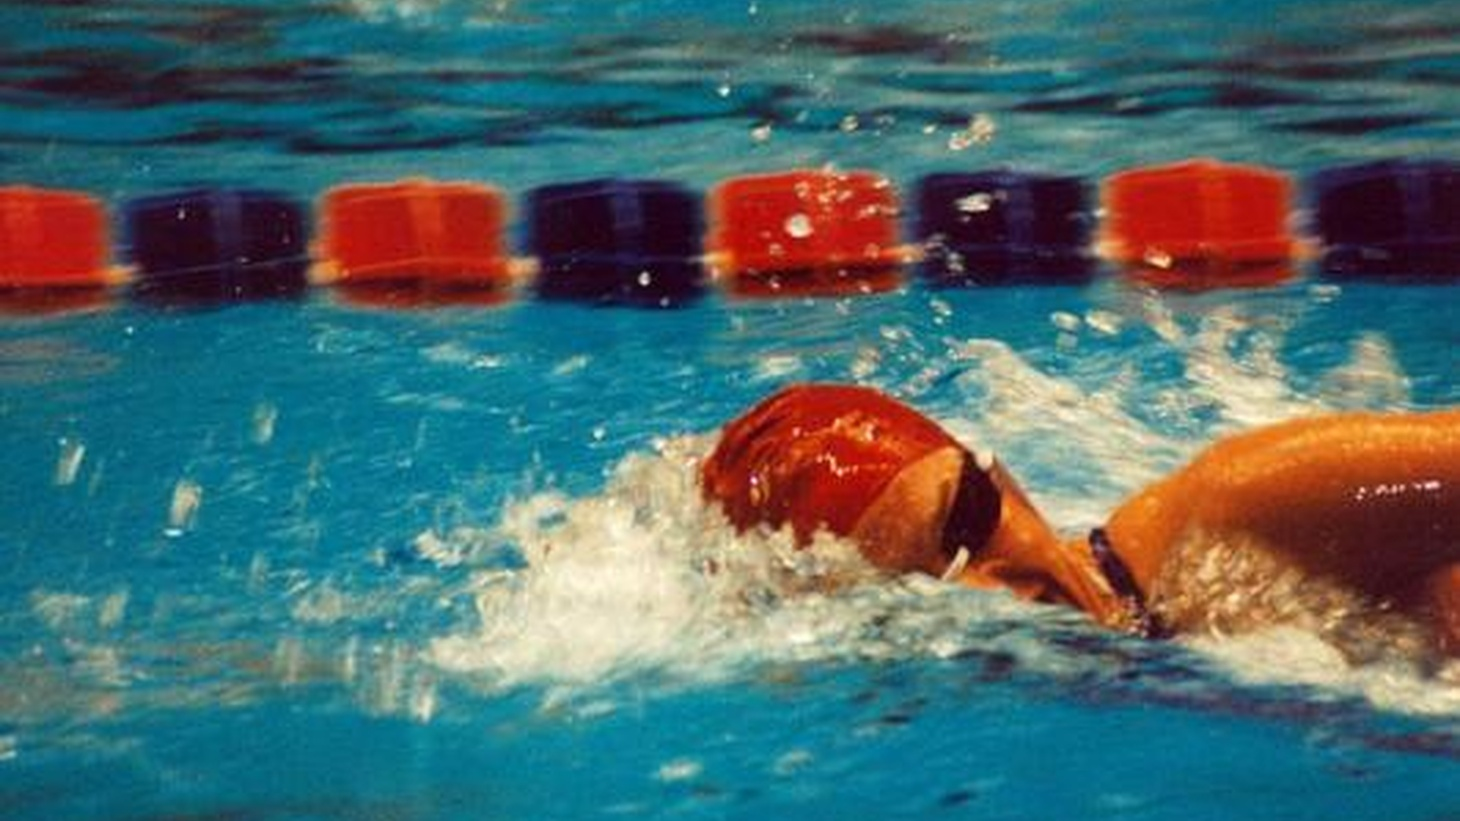 ABC News has reported the sex crimes scandal of 36 USA Swimming coaches abusing their athletes over the last decade…and compares the crimes to those of the Catholic Church in that USA Swimming allegedly covered for the perpetrators and allowed them to keep coaching. I also am a victim of sexual abuse by my swim coach...